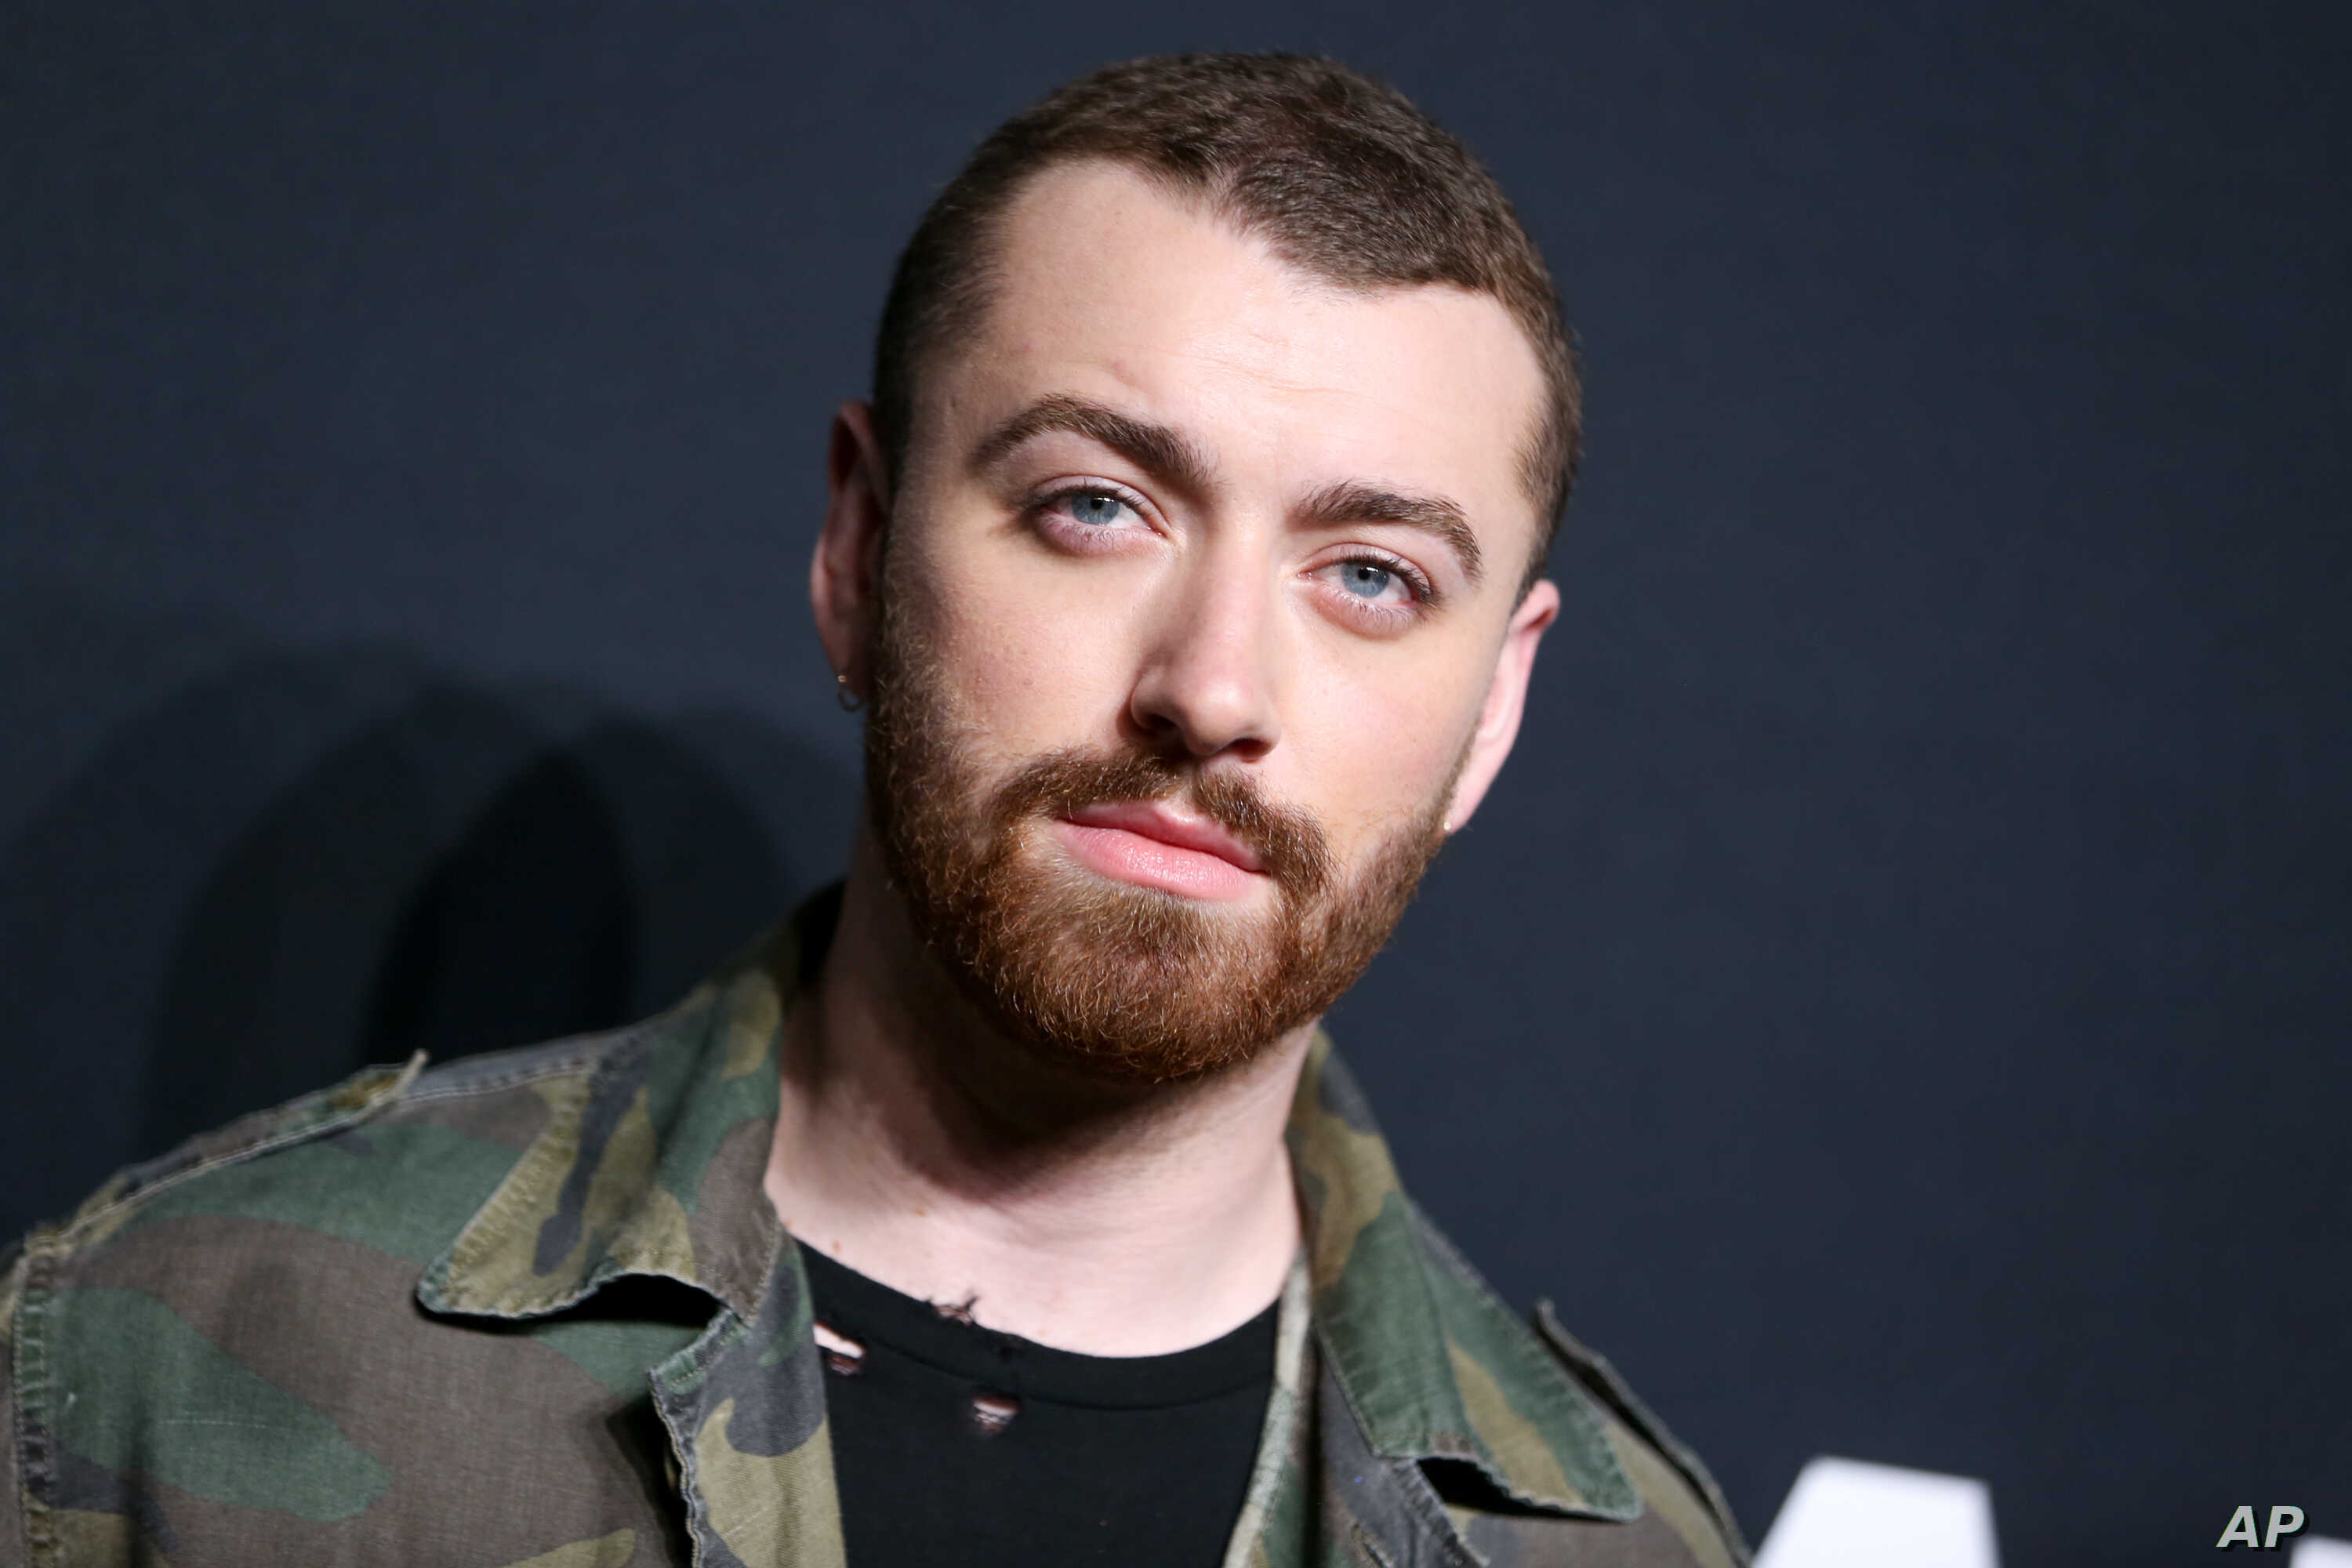 FILE - Sam Smith arrives at Saint Laurent at the Palladium at the Hollywood Palladium in Los Angeles.